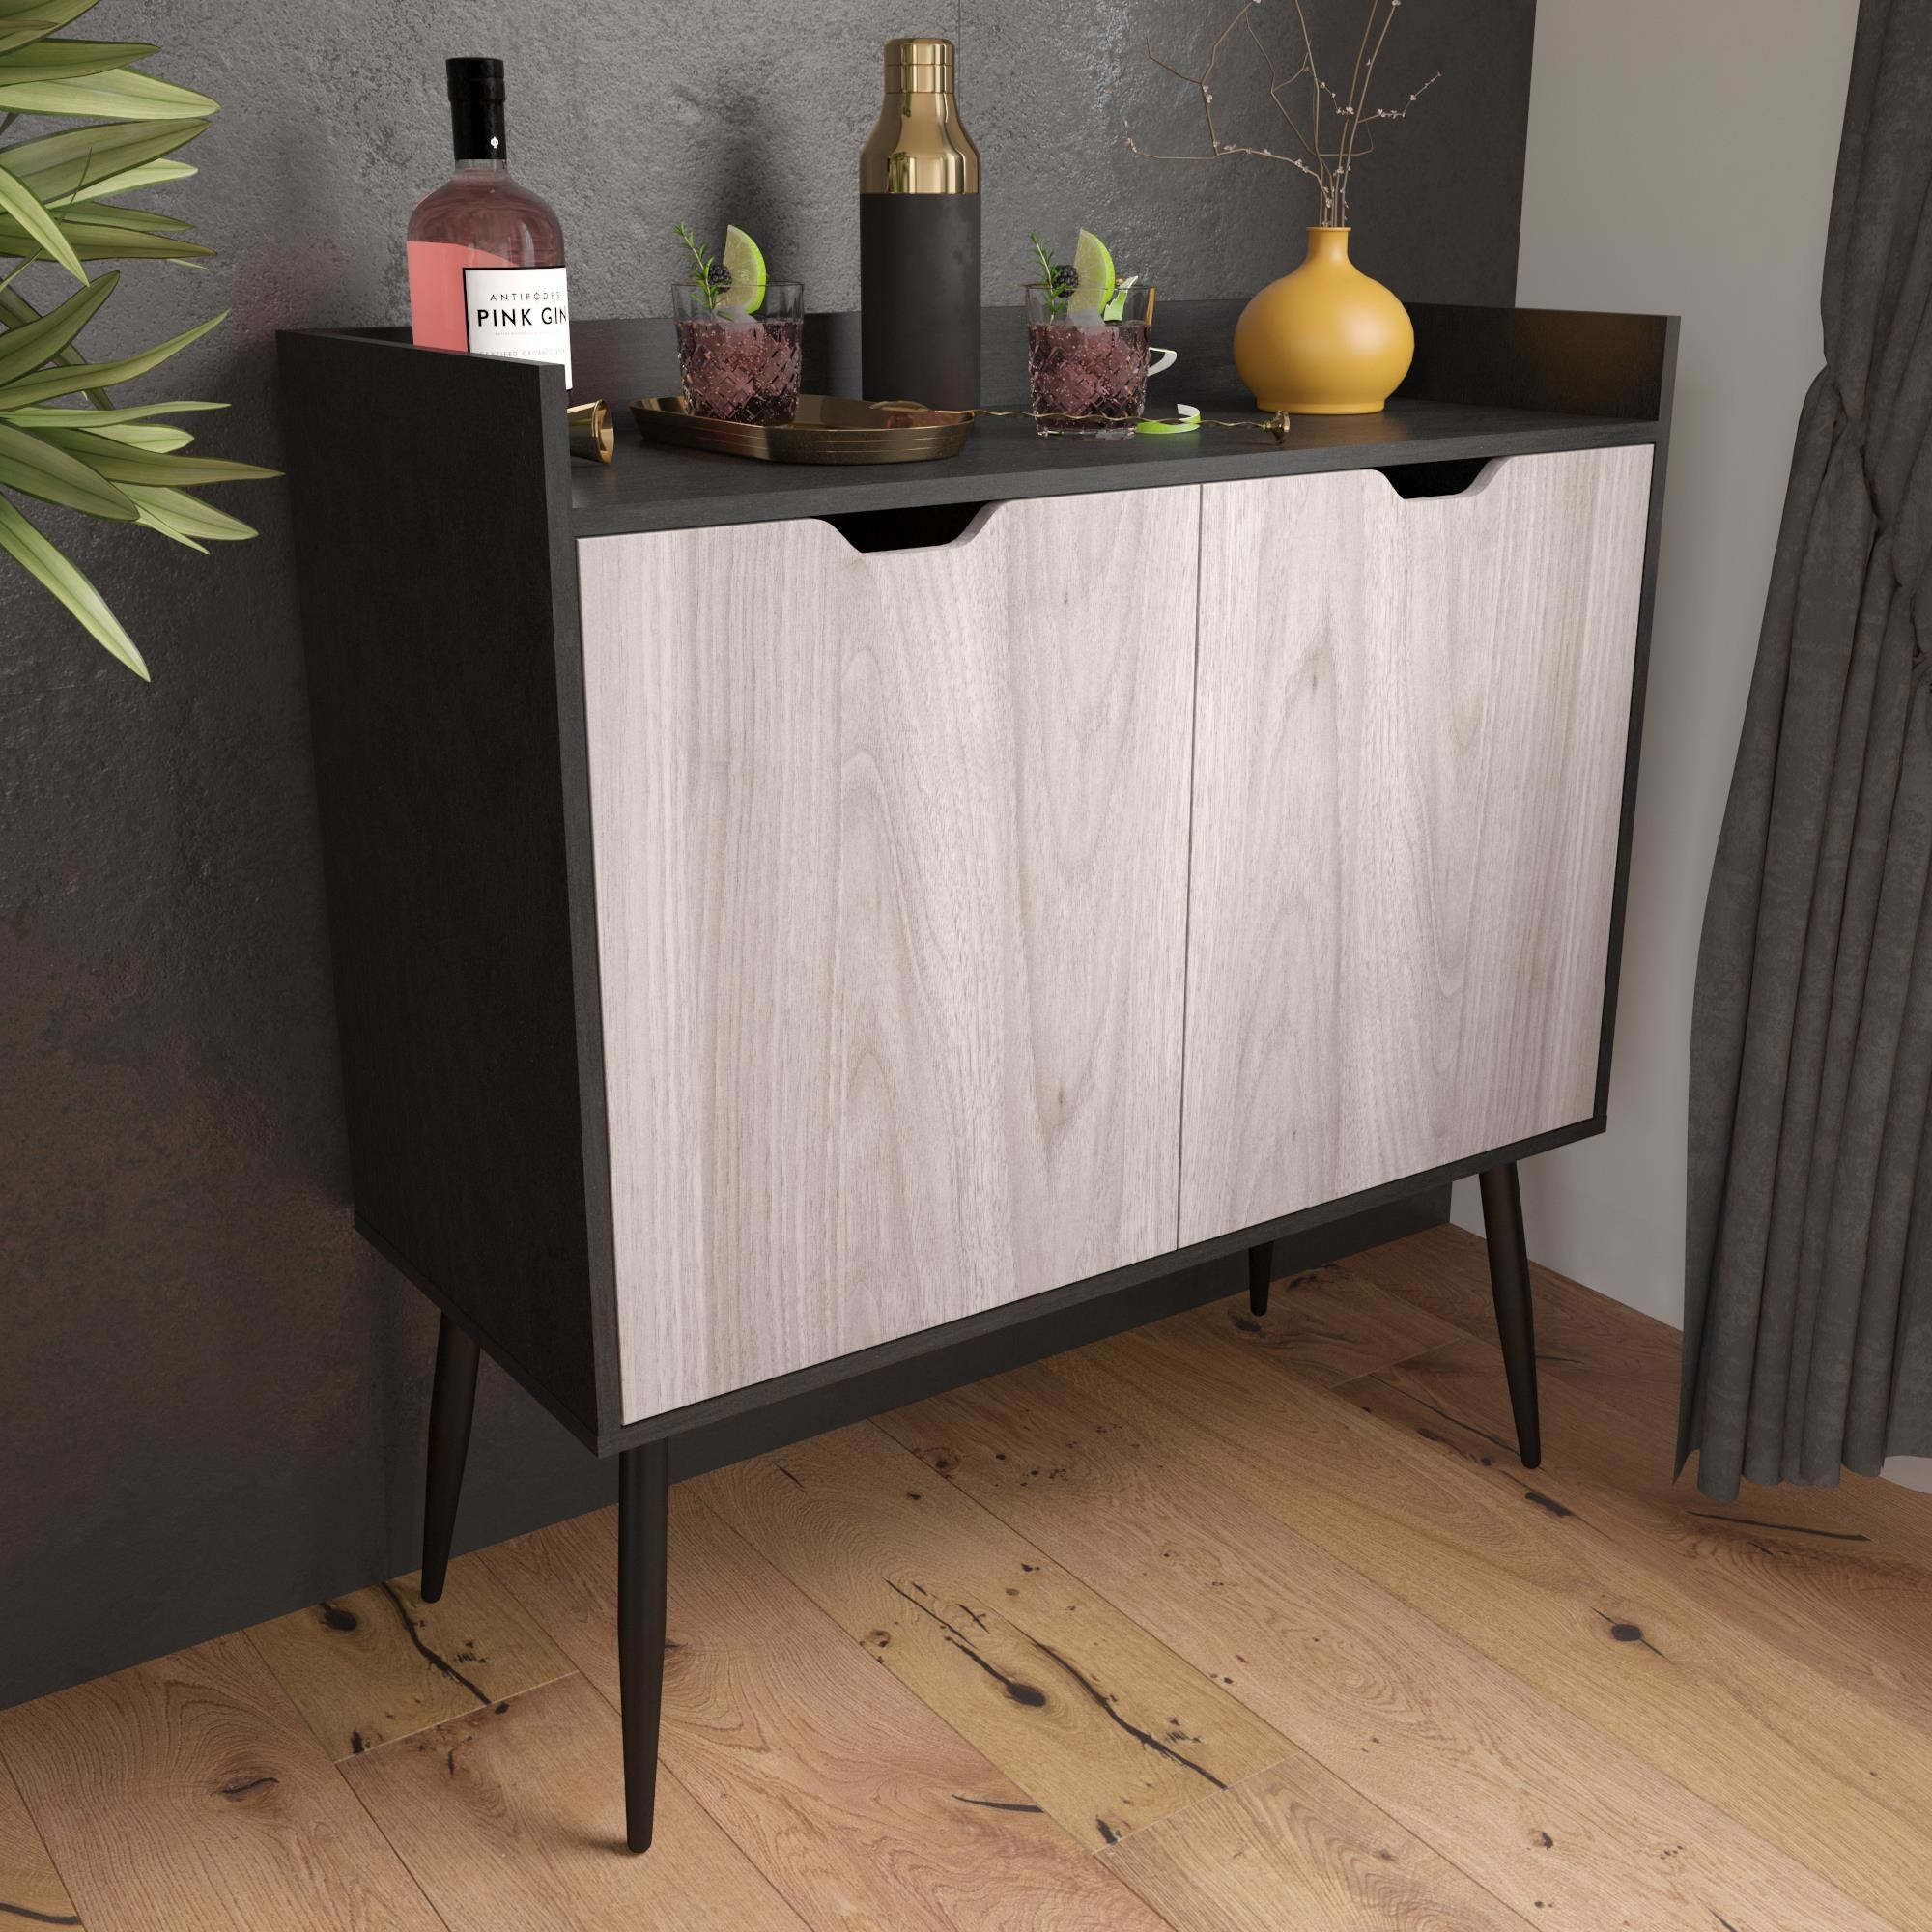 The cabinet, which has two hinged doors that are a light oak color, and a dark body, top, and legs